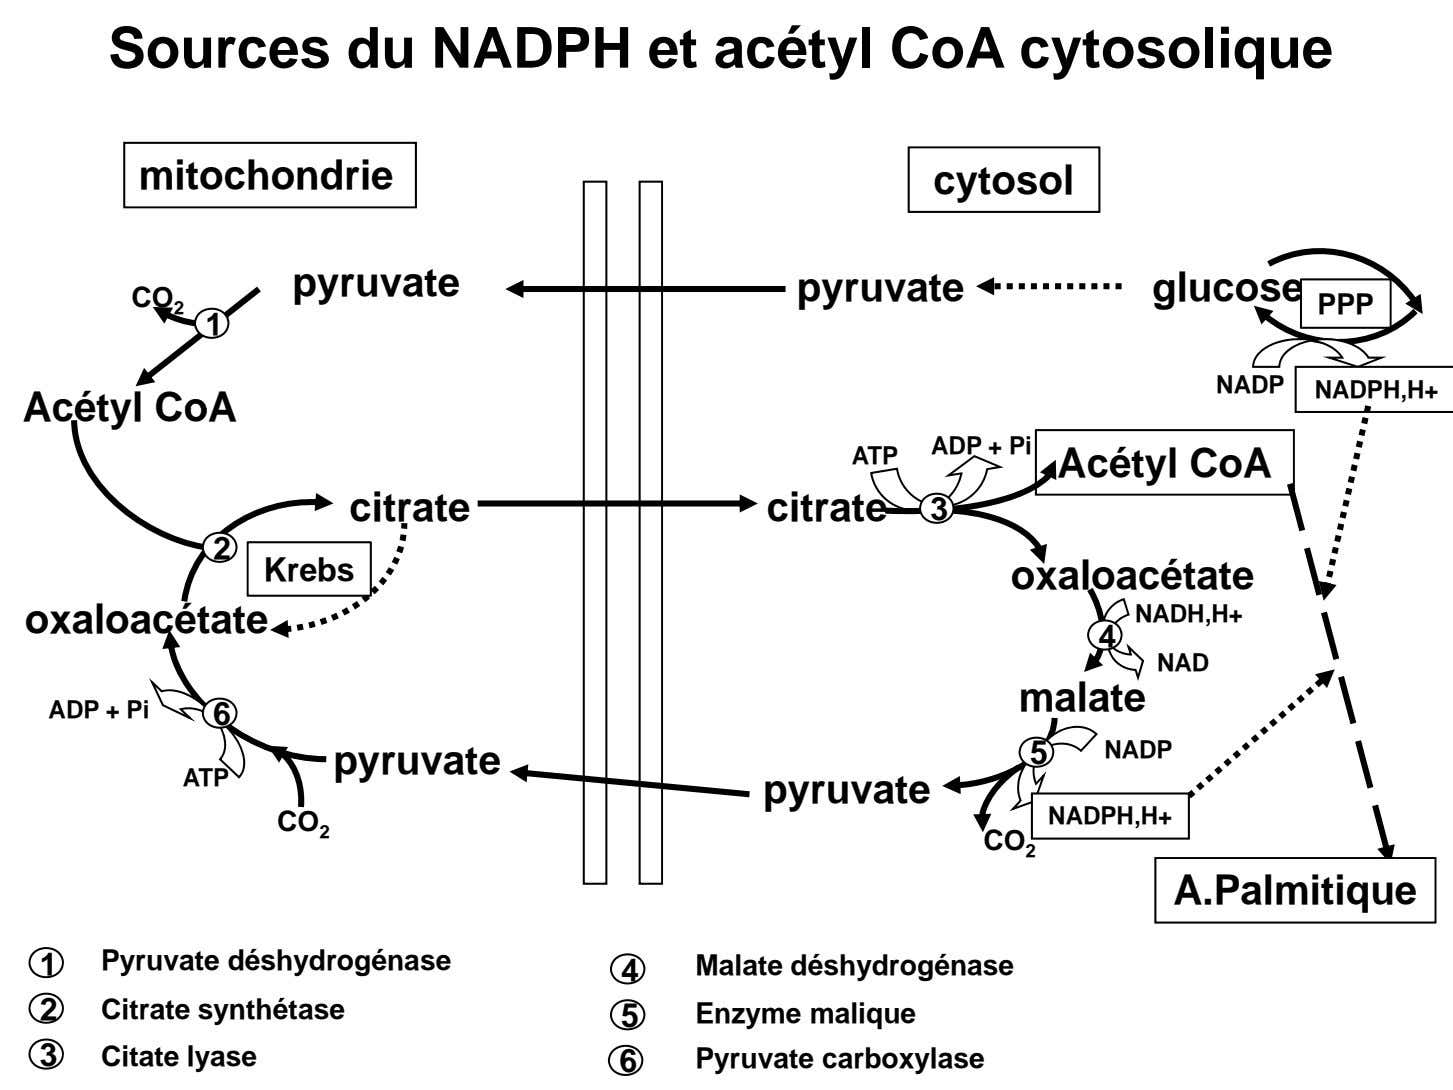 Sources du NADPH et acétyl CoA cytosolique mitochondrie cytosol pyruvate pyruvate glucose CO 2 PPP